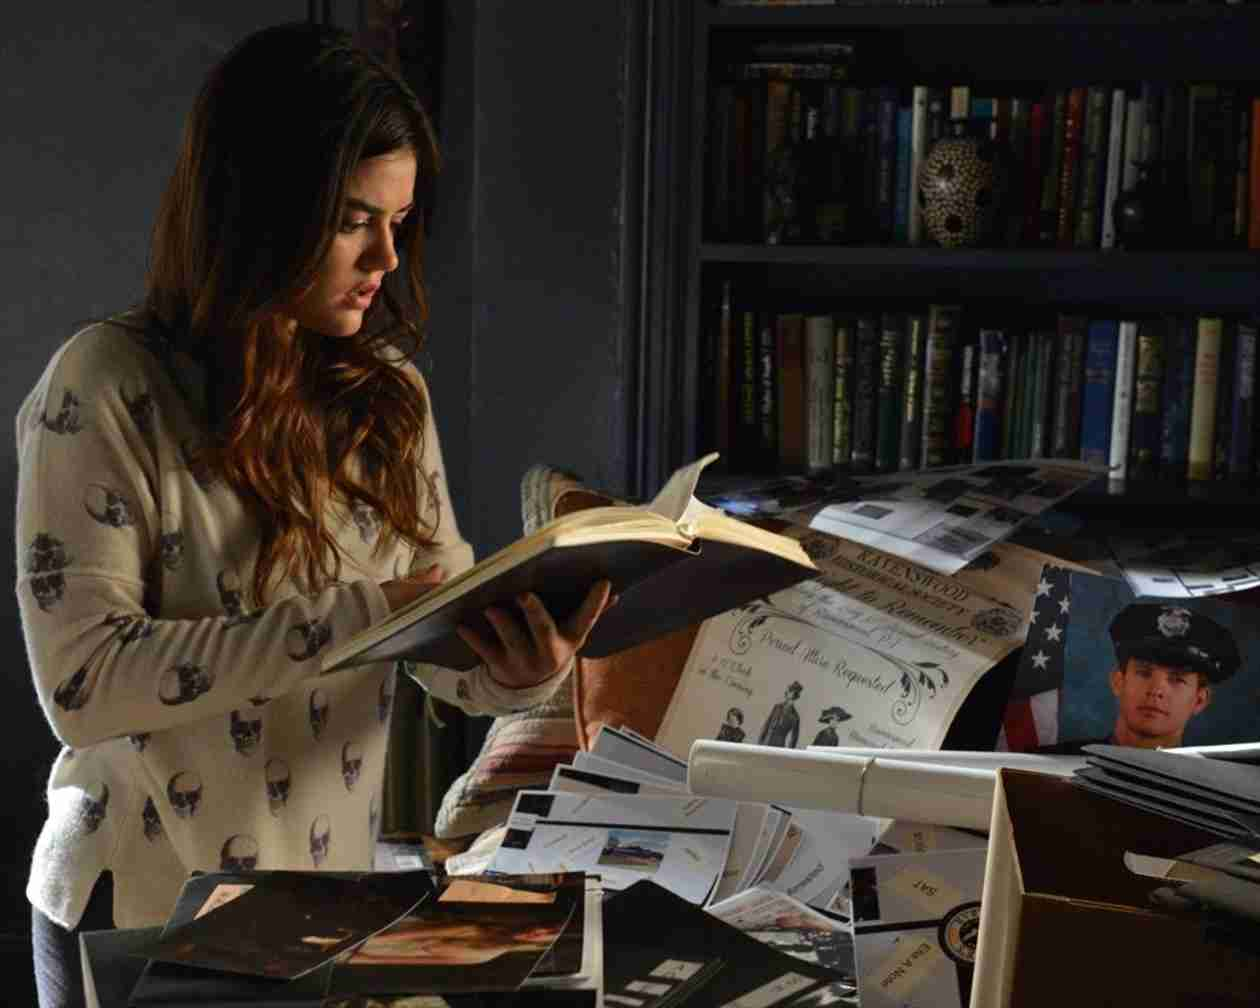 5 Reasons Aria Needs to Be Single on Pretty Little Liars